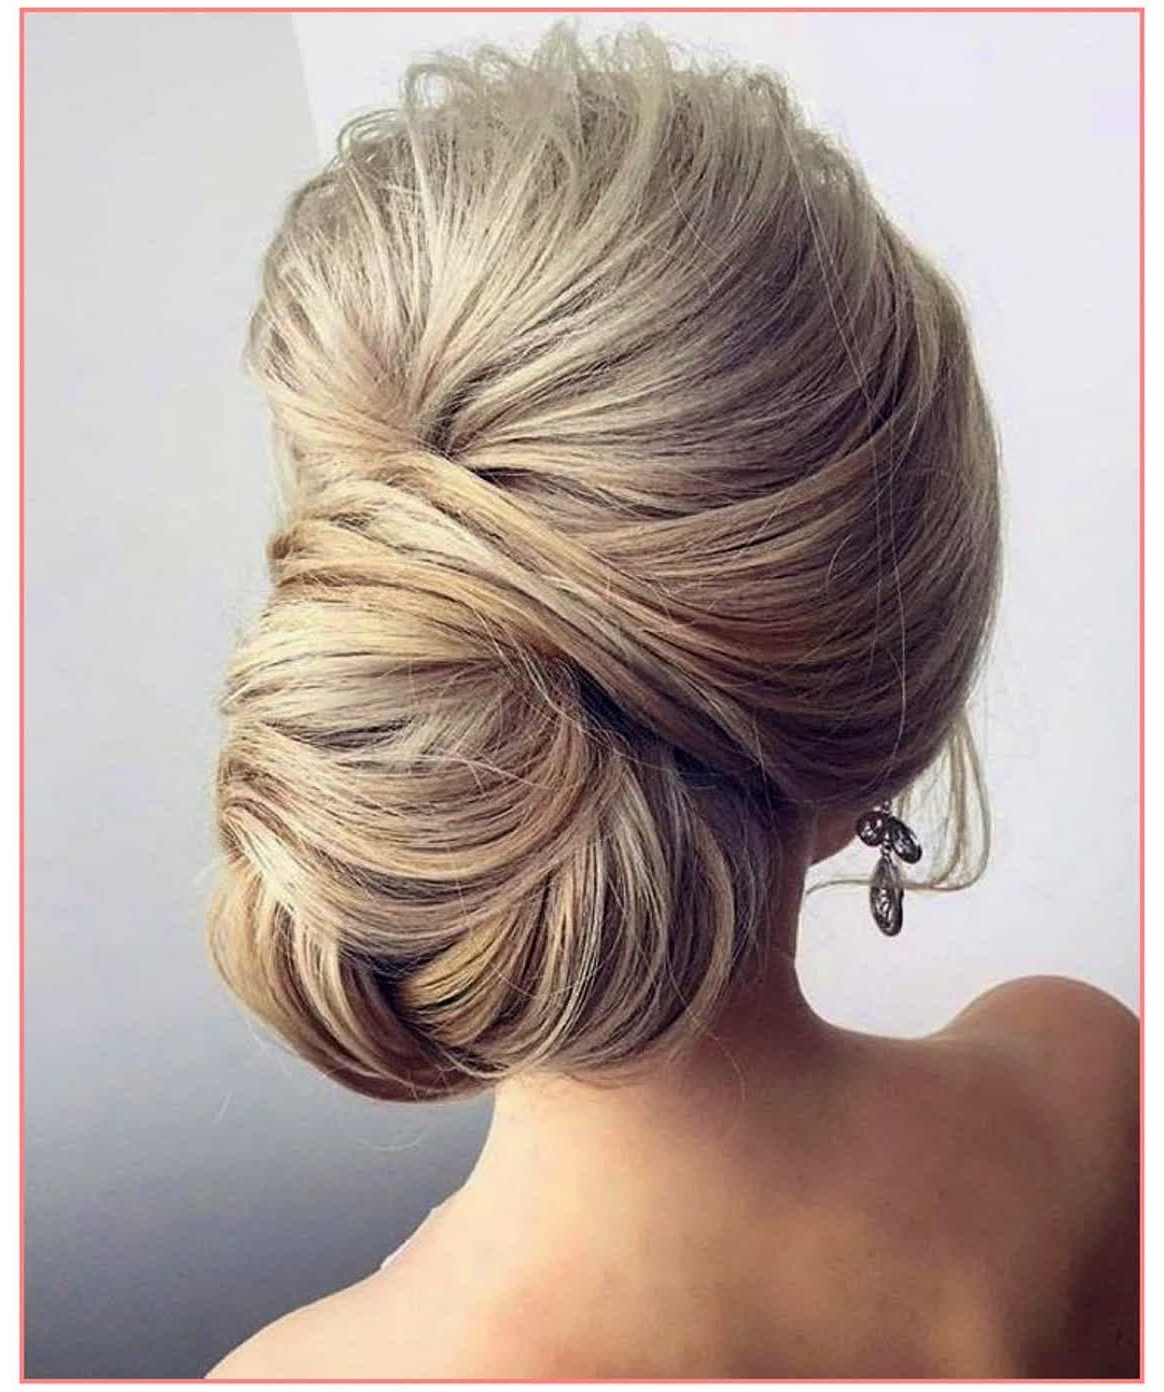 Beautiful Hairstyles Wedding Hairstyles Side Chignon – Best Throughout Favorite Chignon Wedding Hairstyles (View 11 of 15)